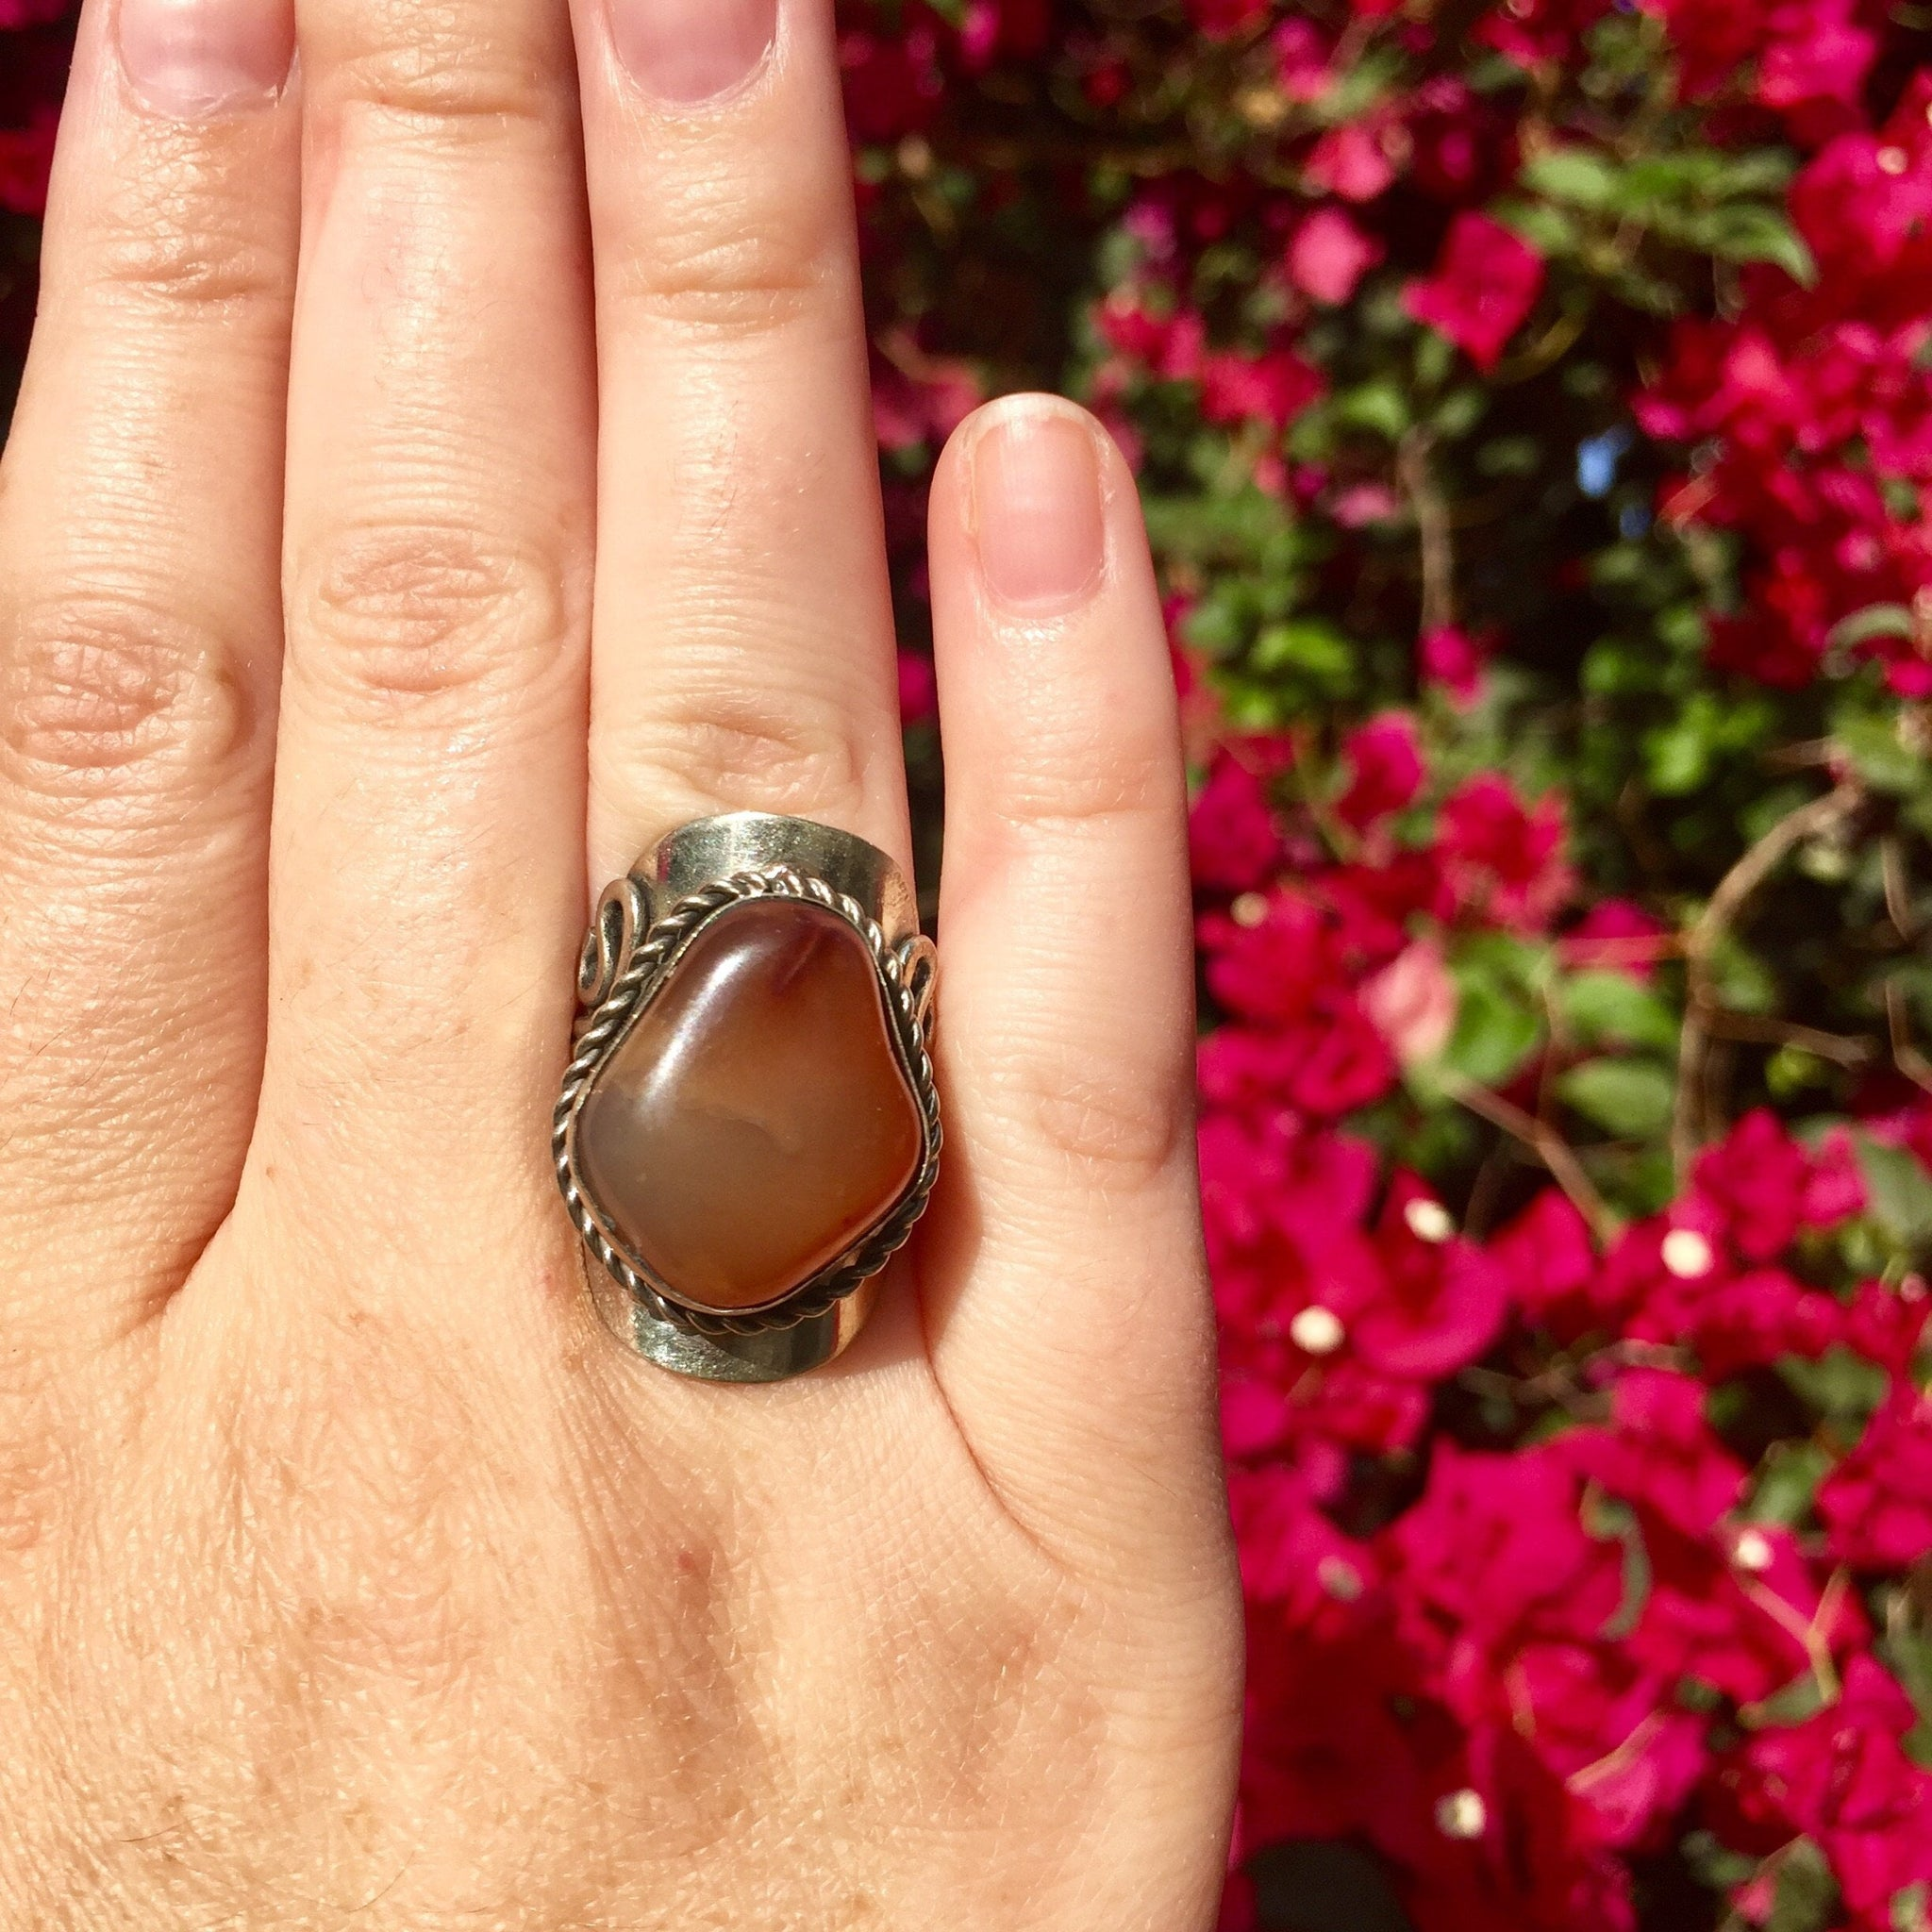 Carnelian Crystal Ring - Sparkle Rock Pop